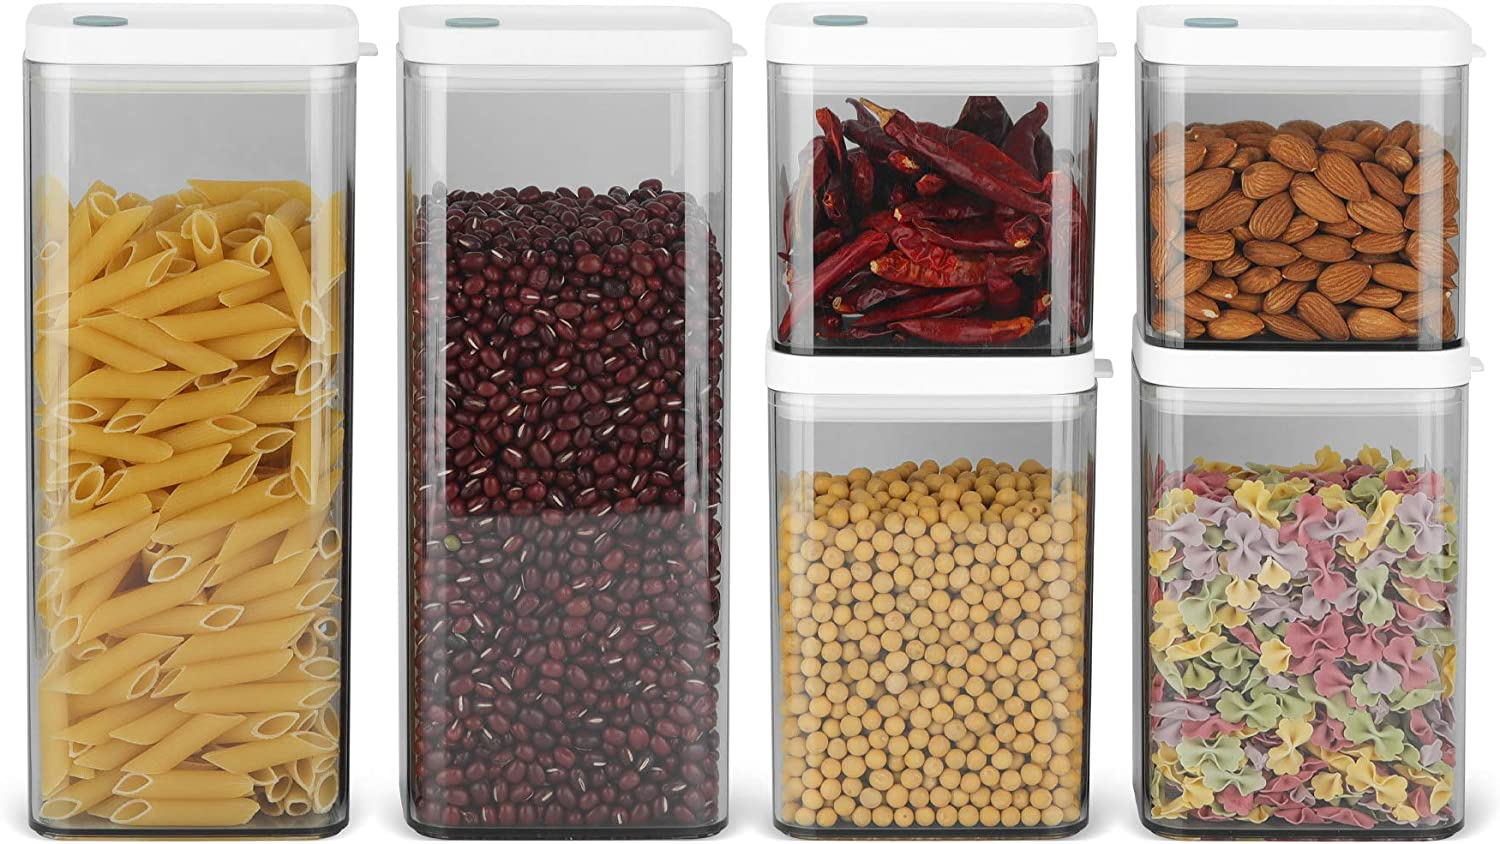 ComSaf Airtight Food Storage Container with Lid(24oz/37oz/64oz) Set of 6, Square Airtight Canisters, BPA Free Clear Plastic Food Storage Canister, Kitchen Pantry Container for Sugar, Flour and Cereal